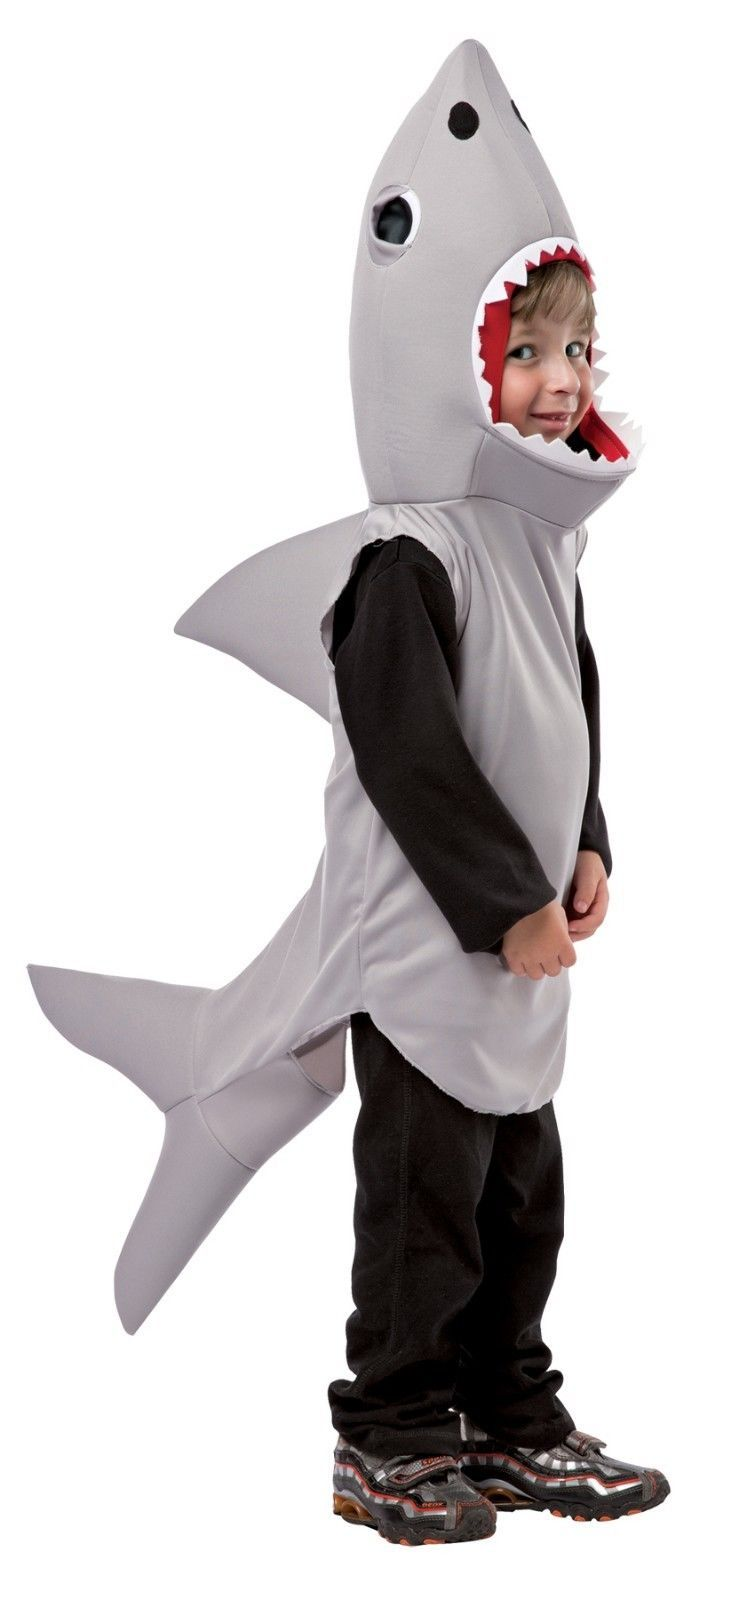 ... Shark Halloween Costume and 50 similar items. S l1600  sc 1 st  Bonanza & Toddler 3T-4T Sand Shark Halloween Costume and 50 similar items